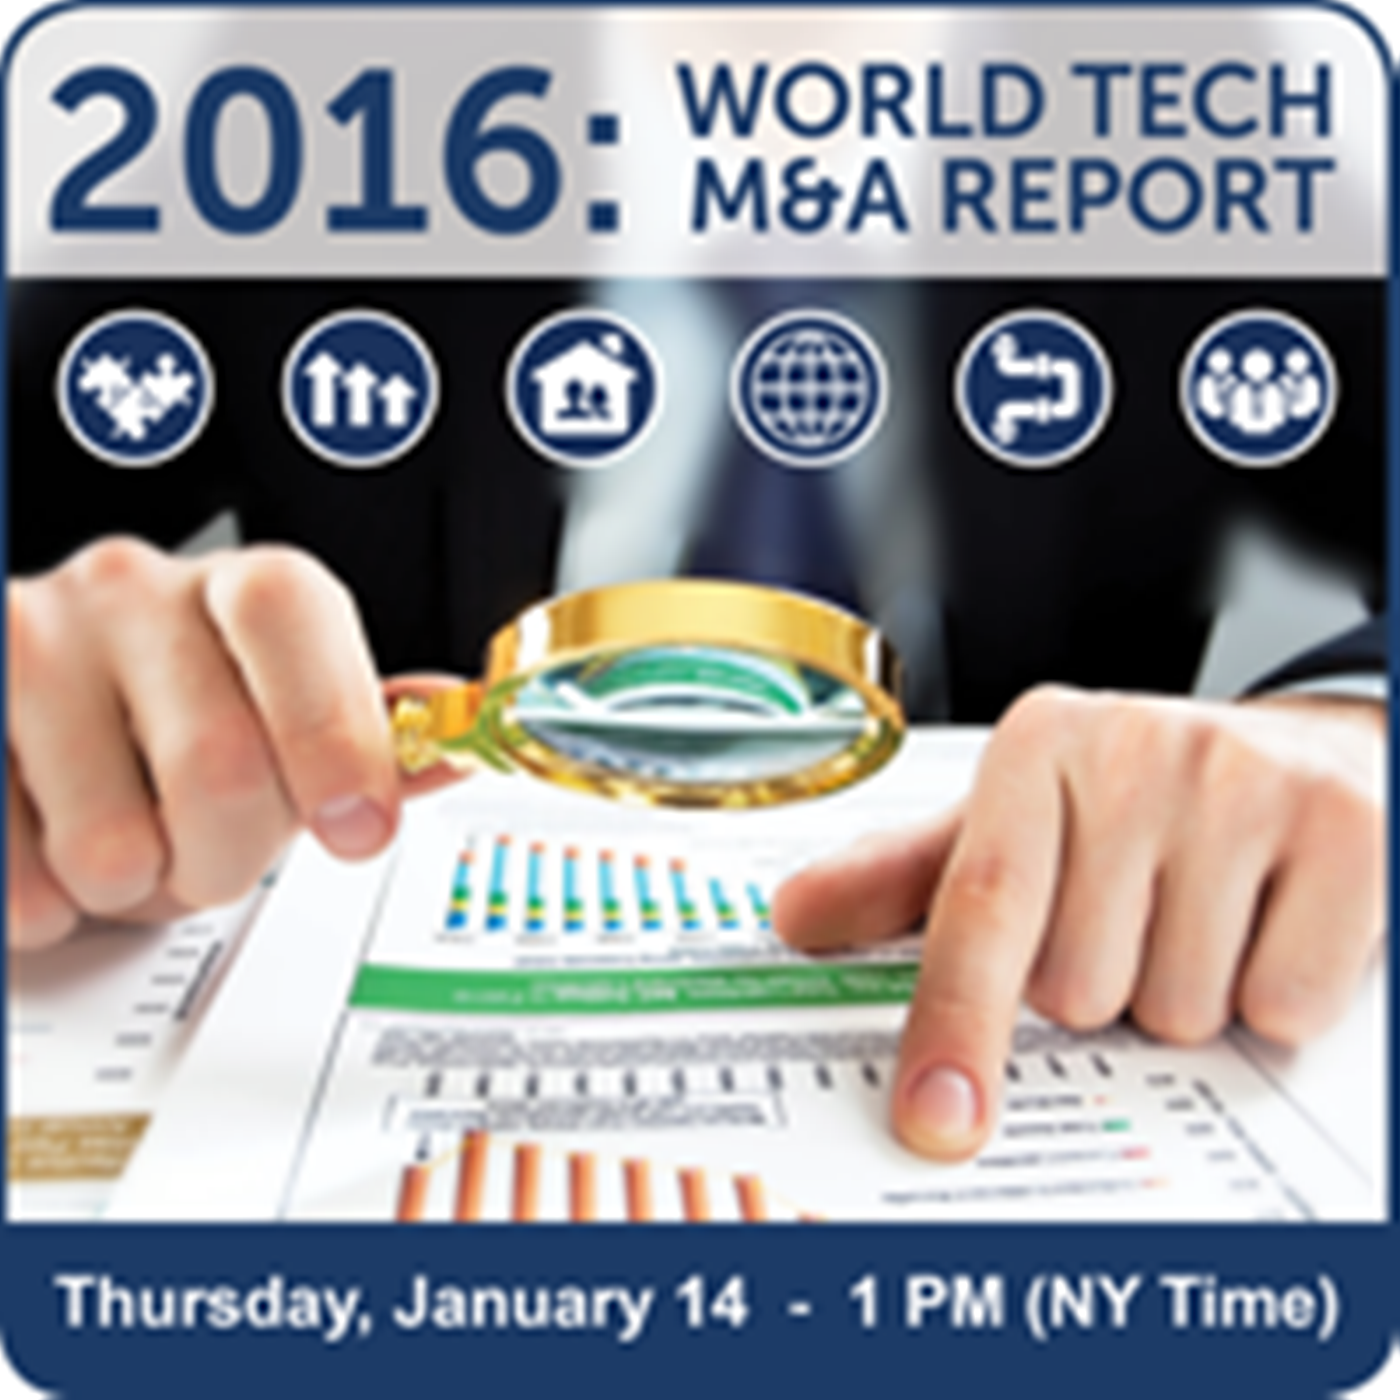 Tech M&A Annual Report - Analysis of Corum's 2015 Predictions